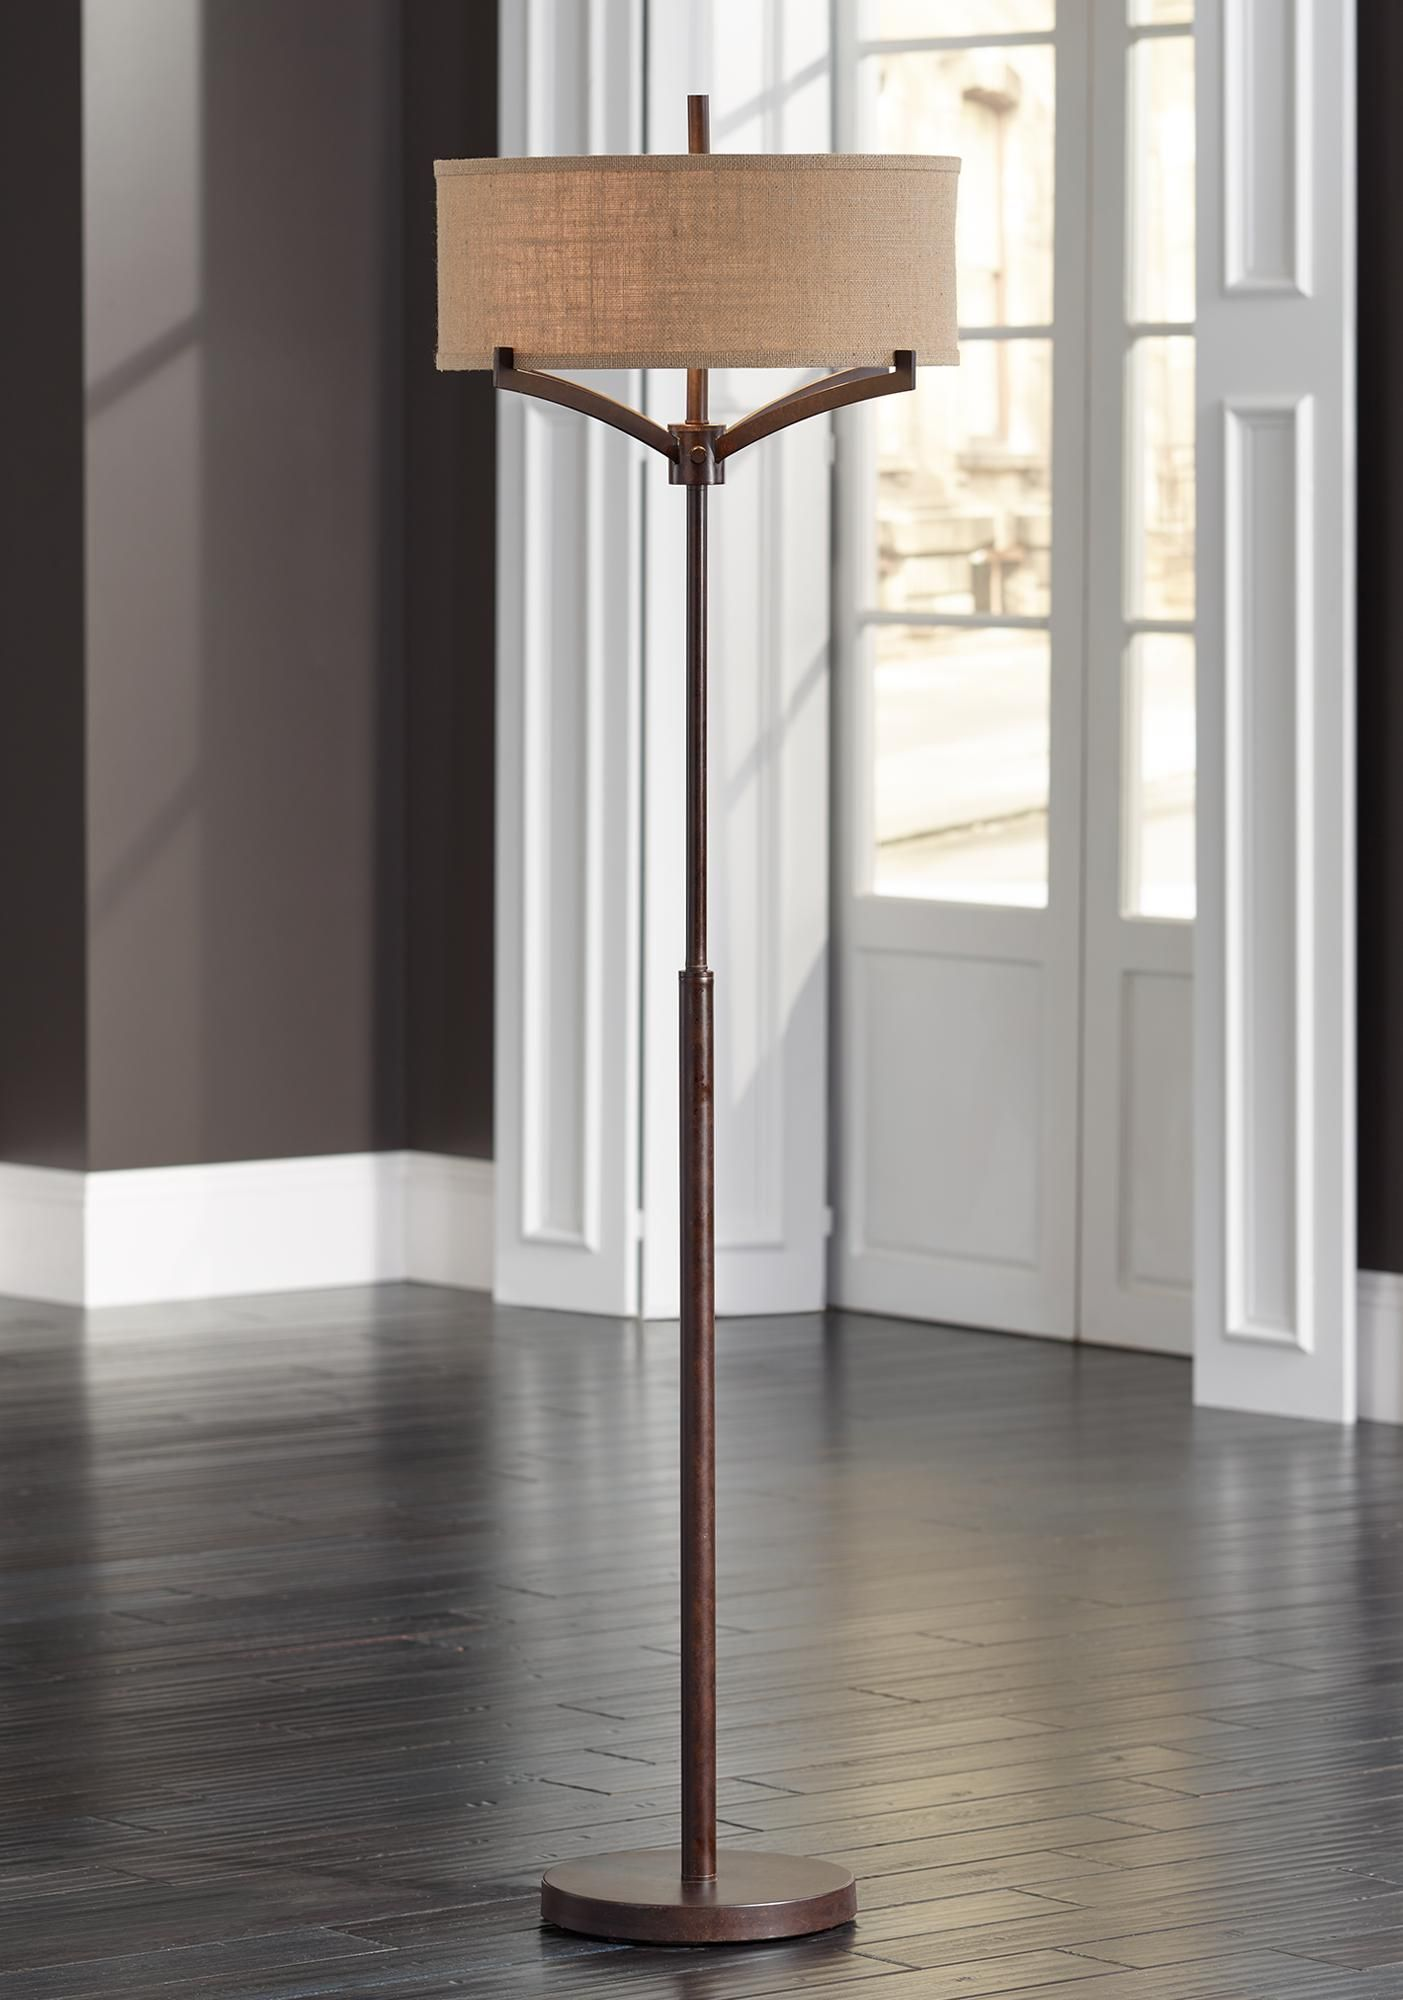 Franklin Iron Works™ Tremont Floor Lamp with Burlap Shade - Franklin Iron Works™ Tremont Floor Lamp With Burlap Shade